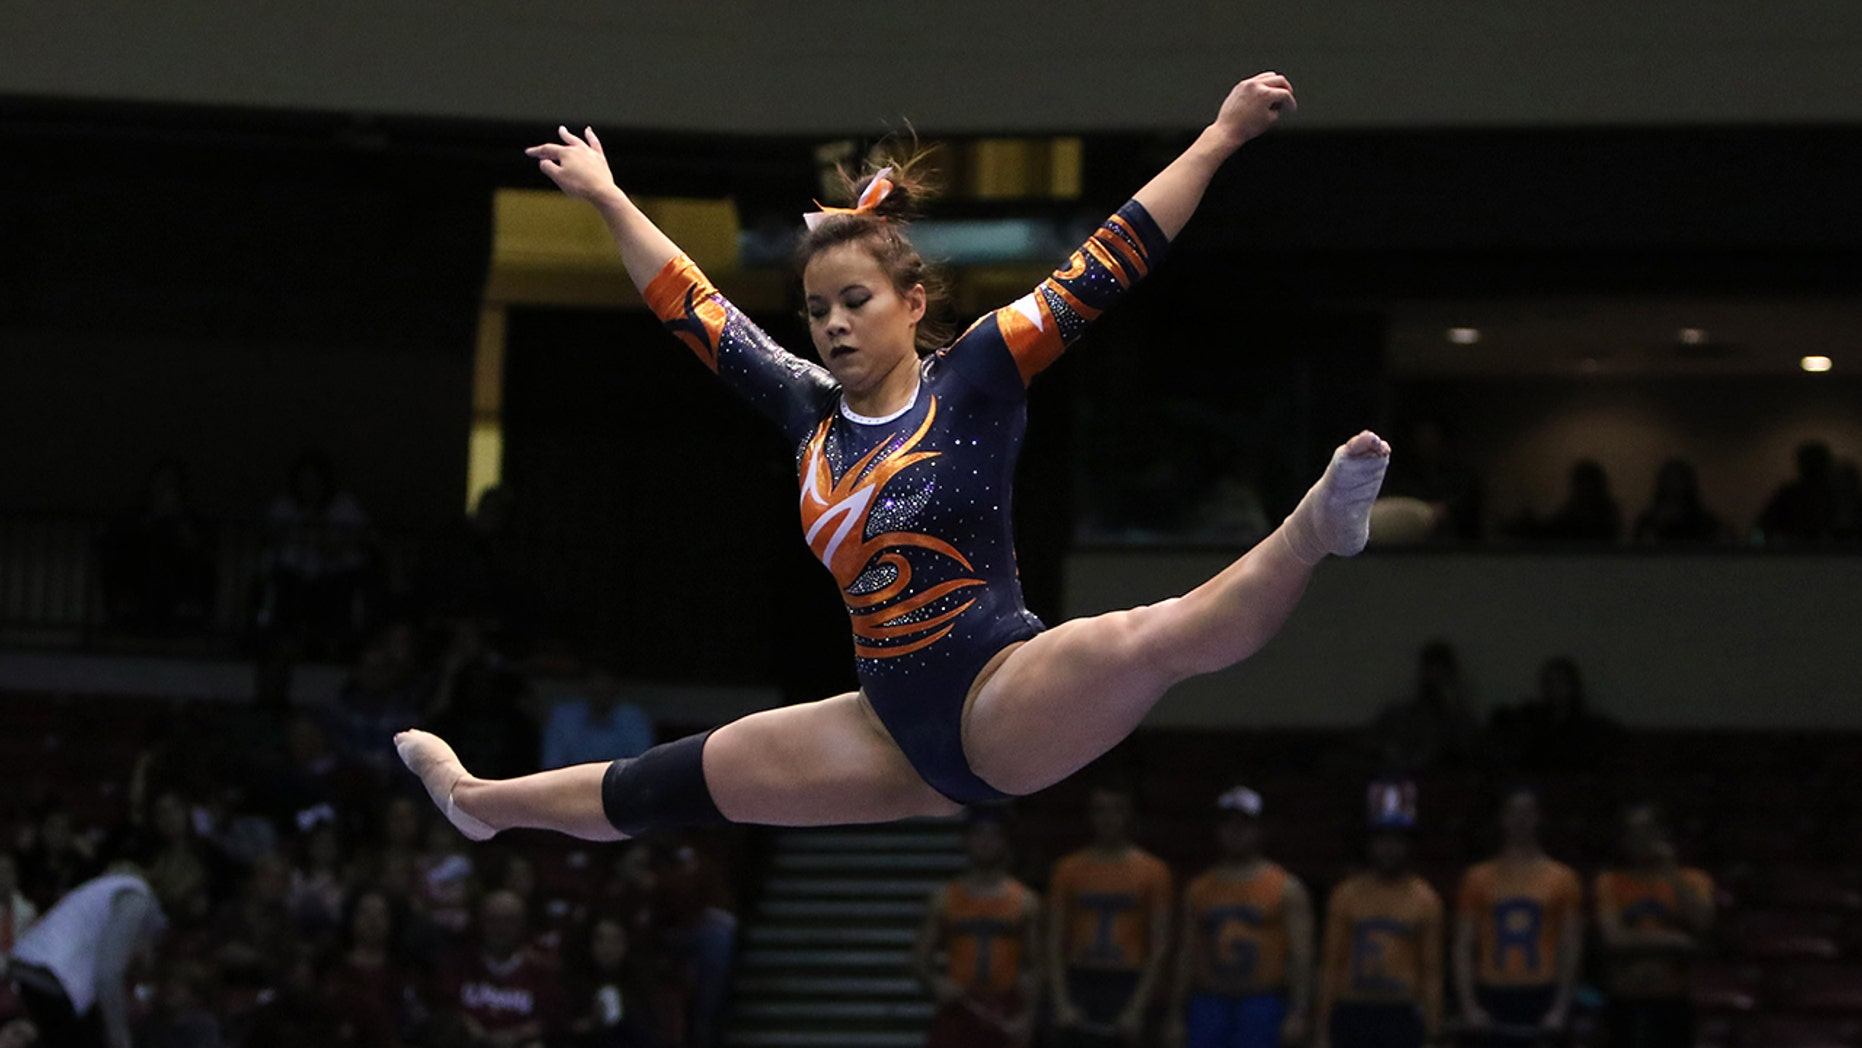 Auburn Tigers Samantha Cerio was severely harmed during her building slight on Friday.